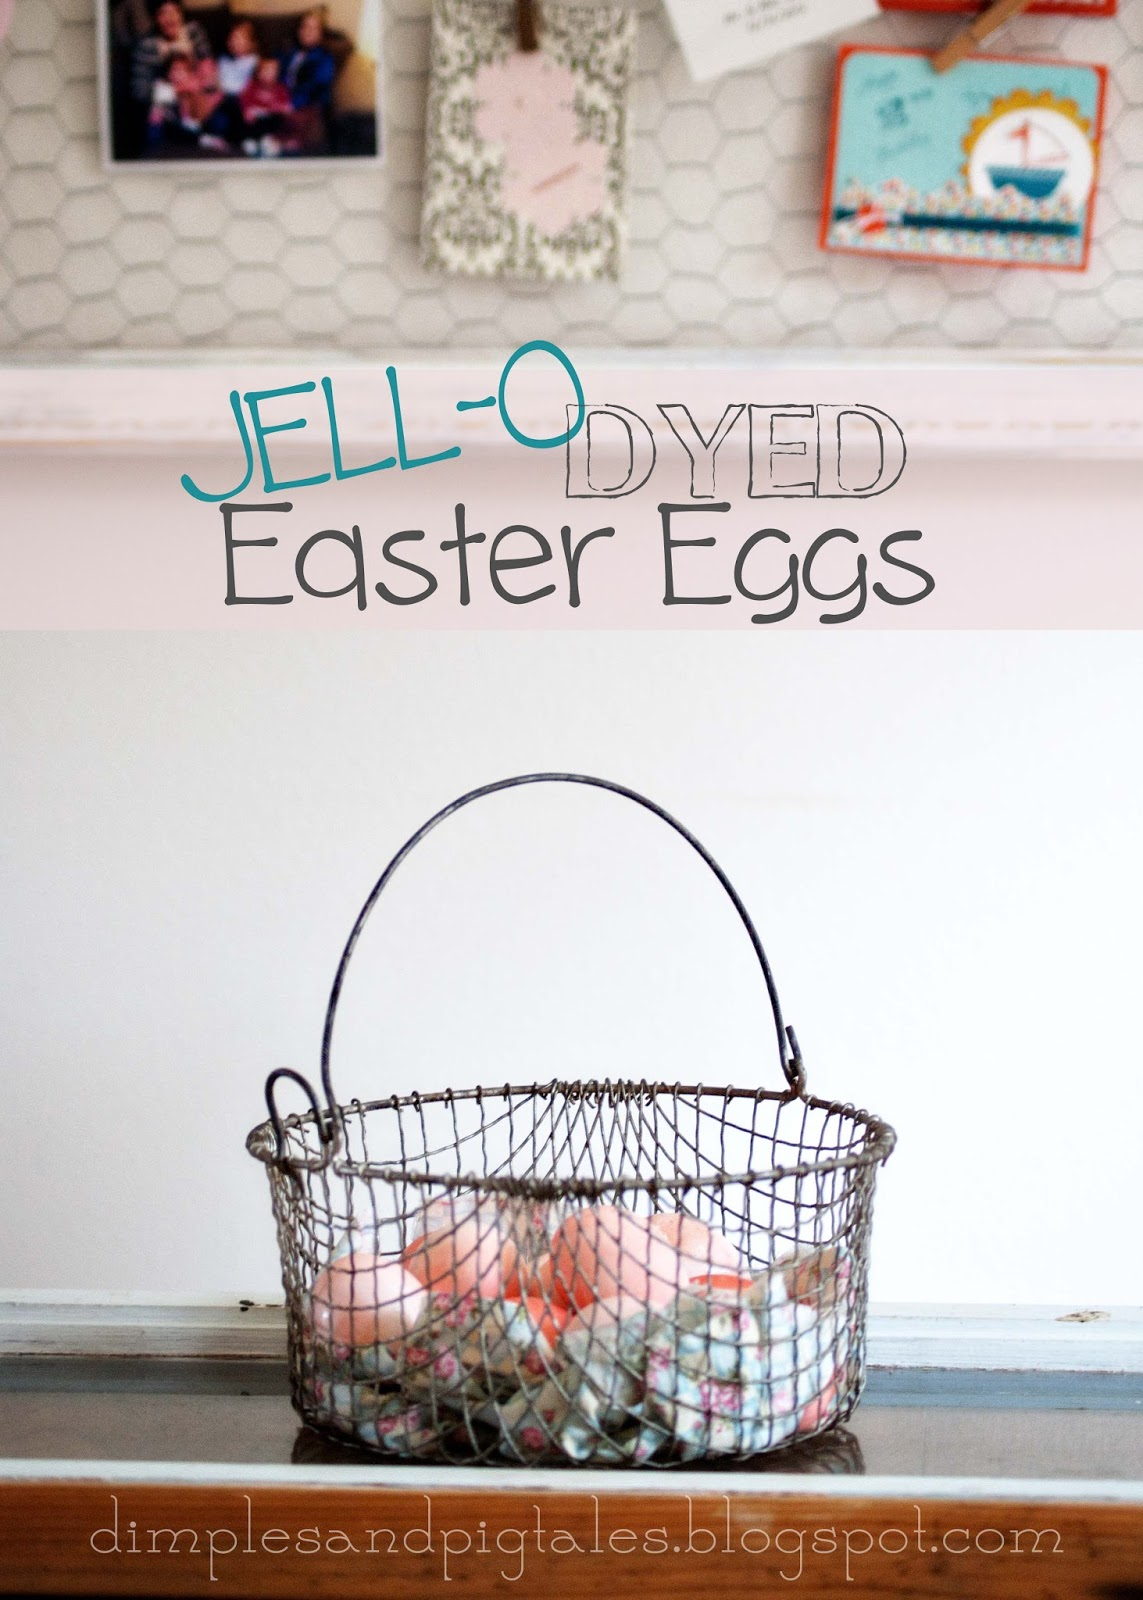 Jello Dyed Easter Eggs {tutorial} | Averie Lane: Jello Dyed Easter ...